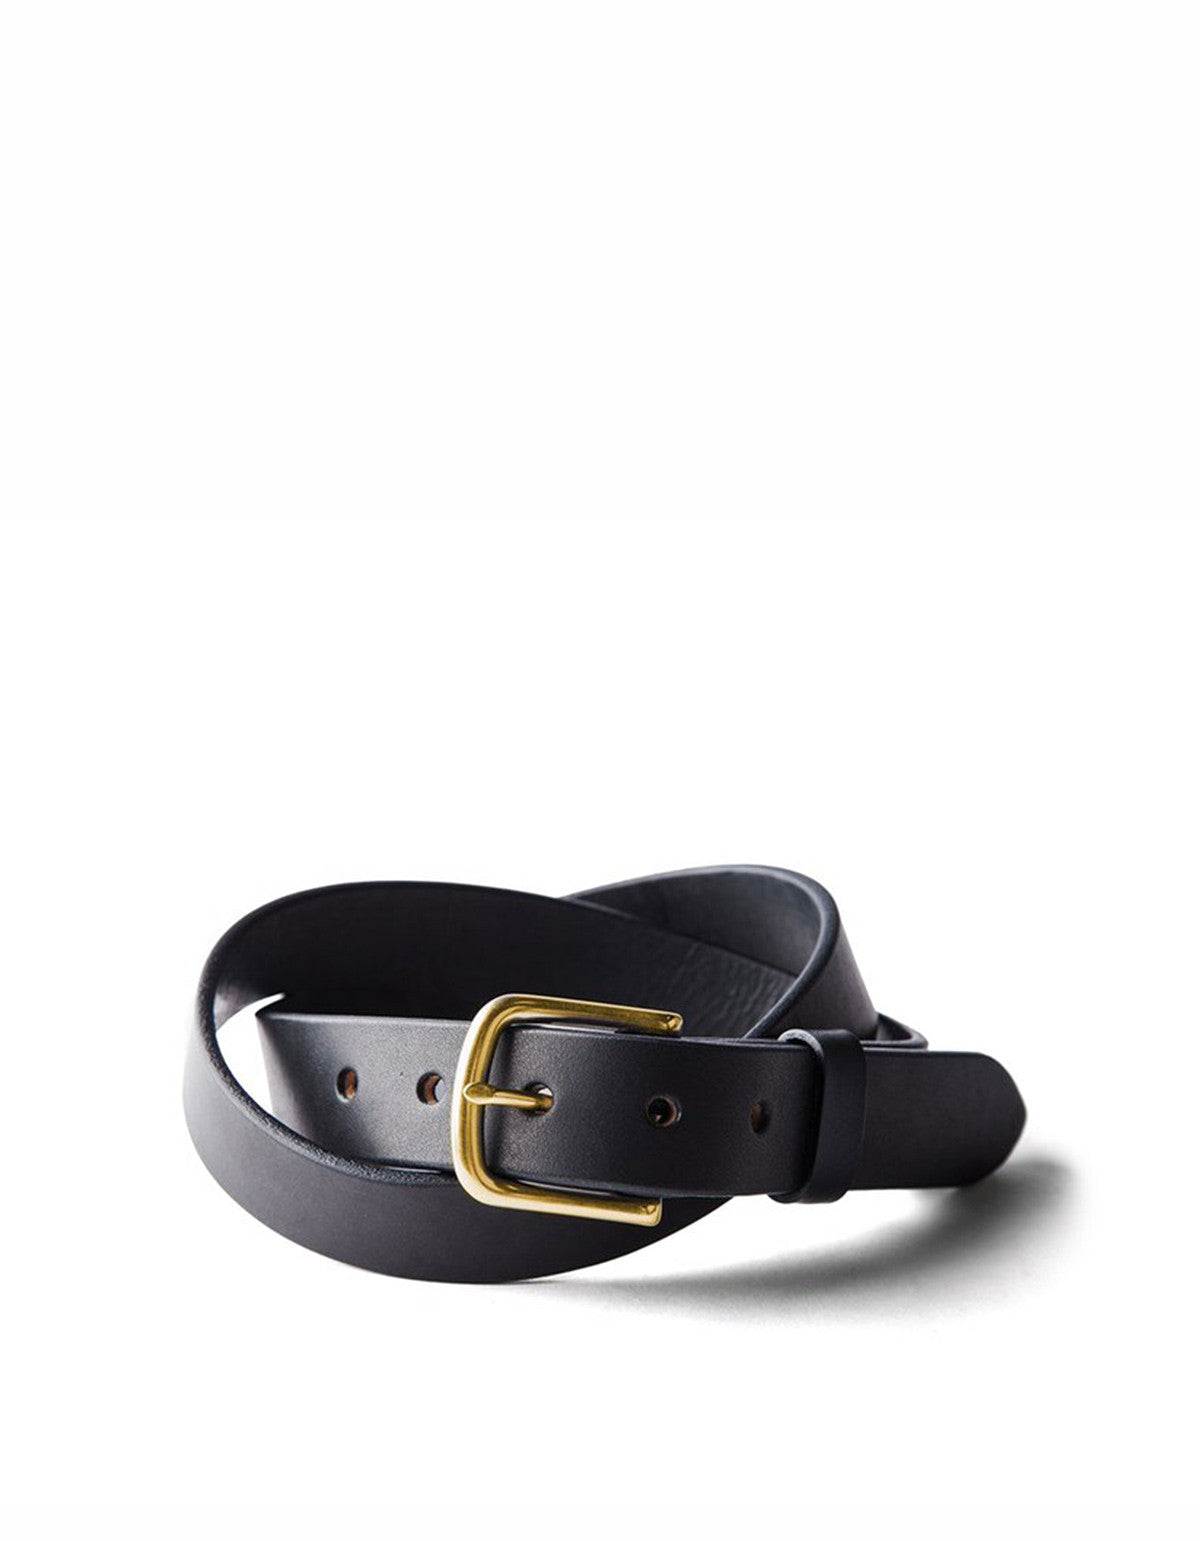 Tanner Goods Classic Belt Black Brass - Still Life - 1